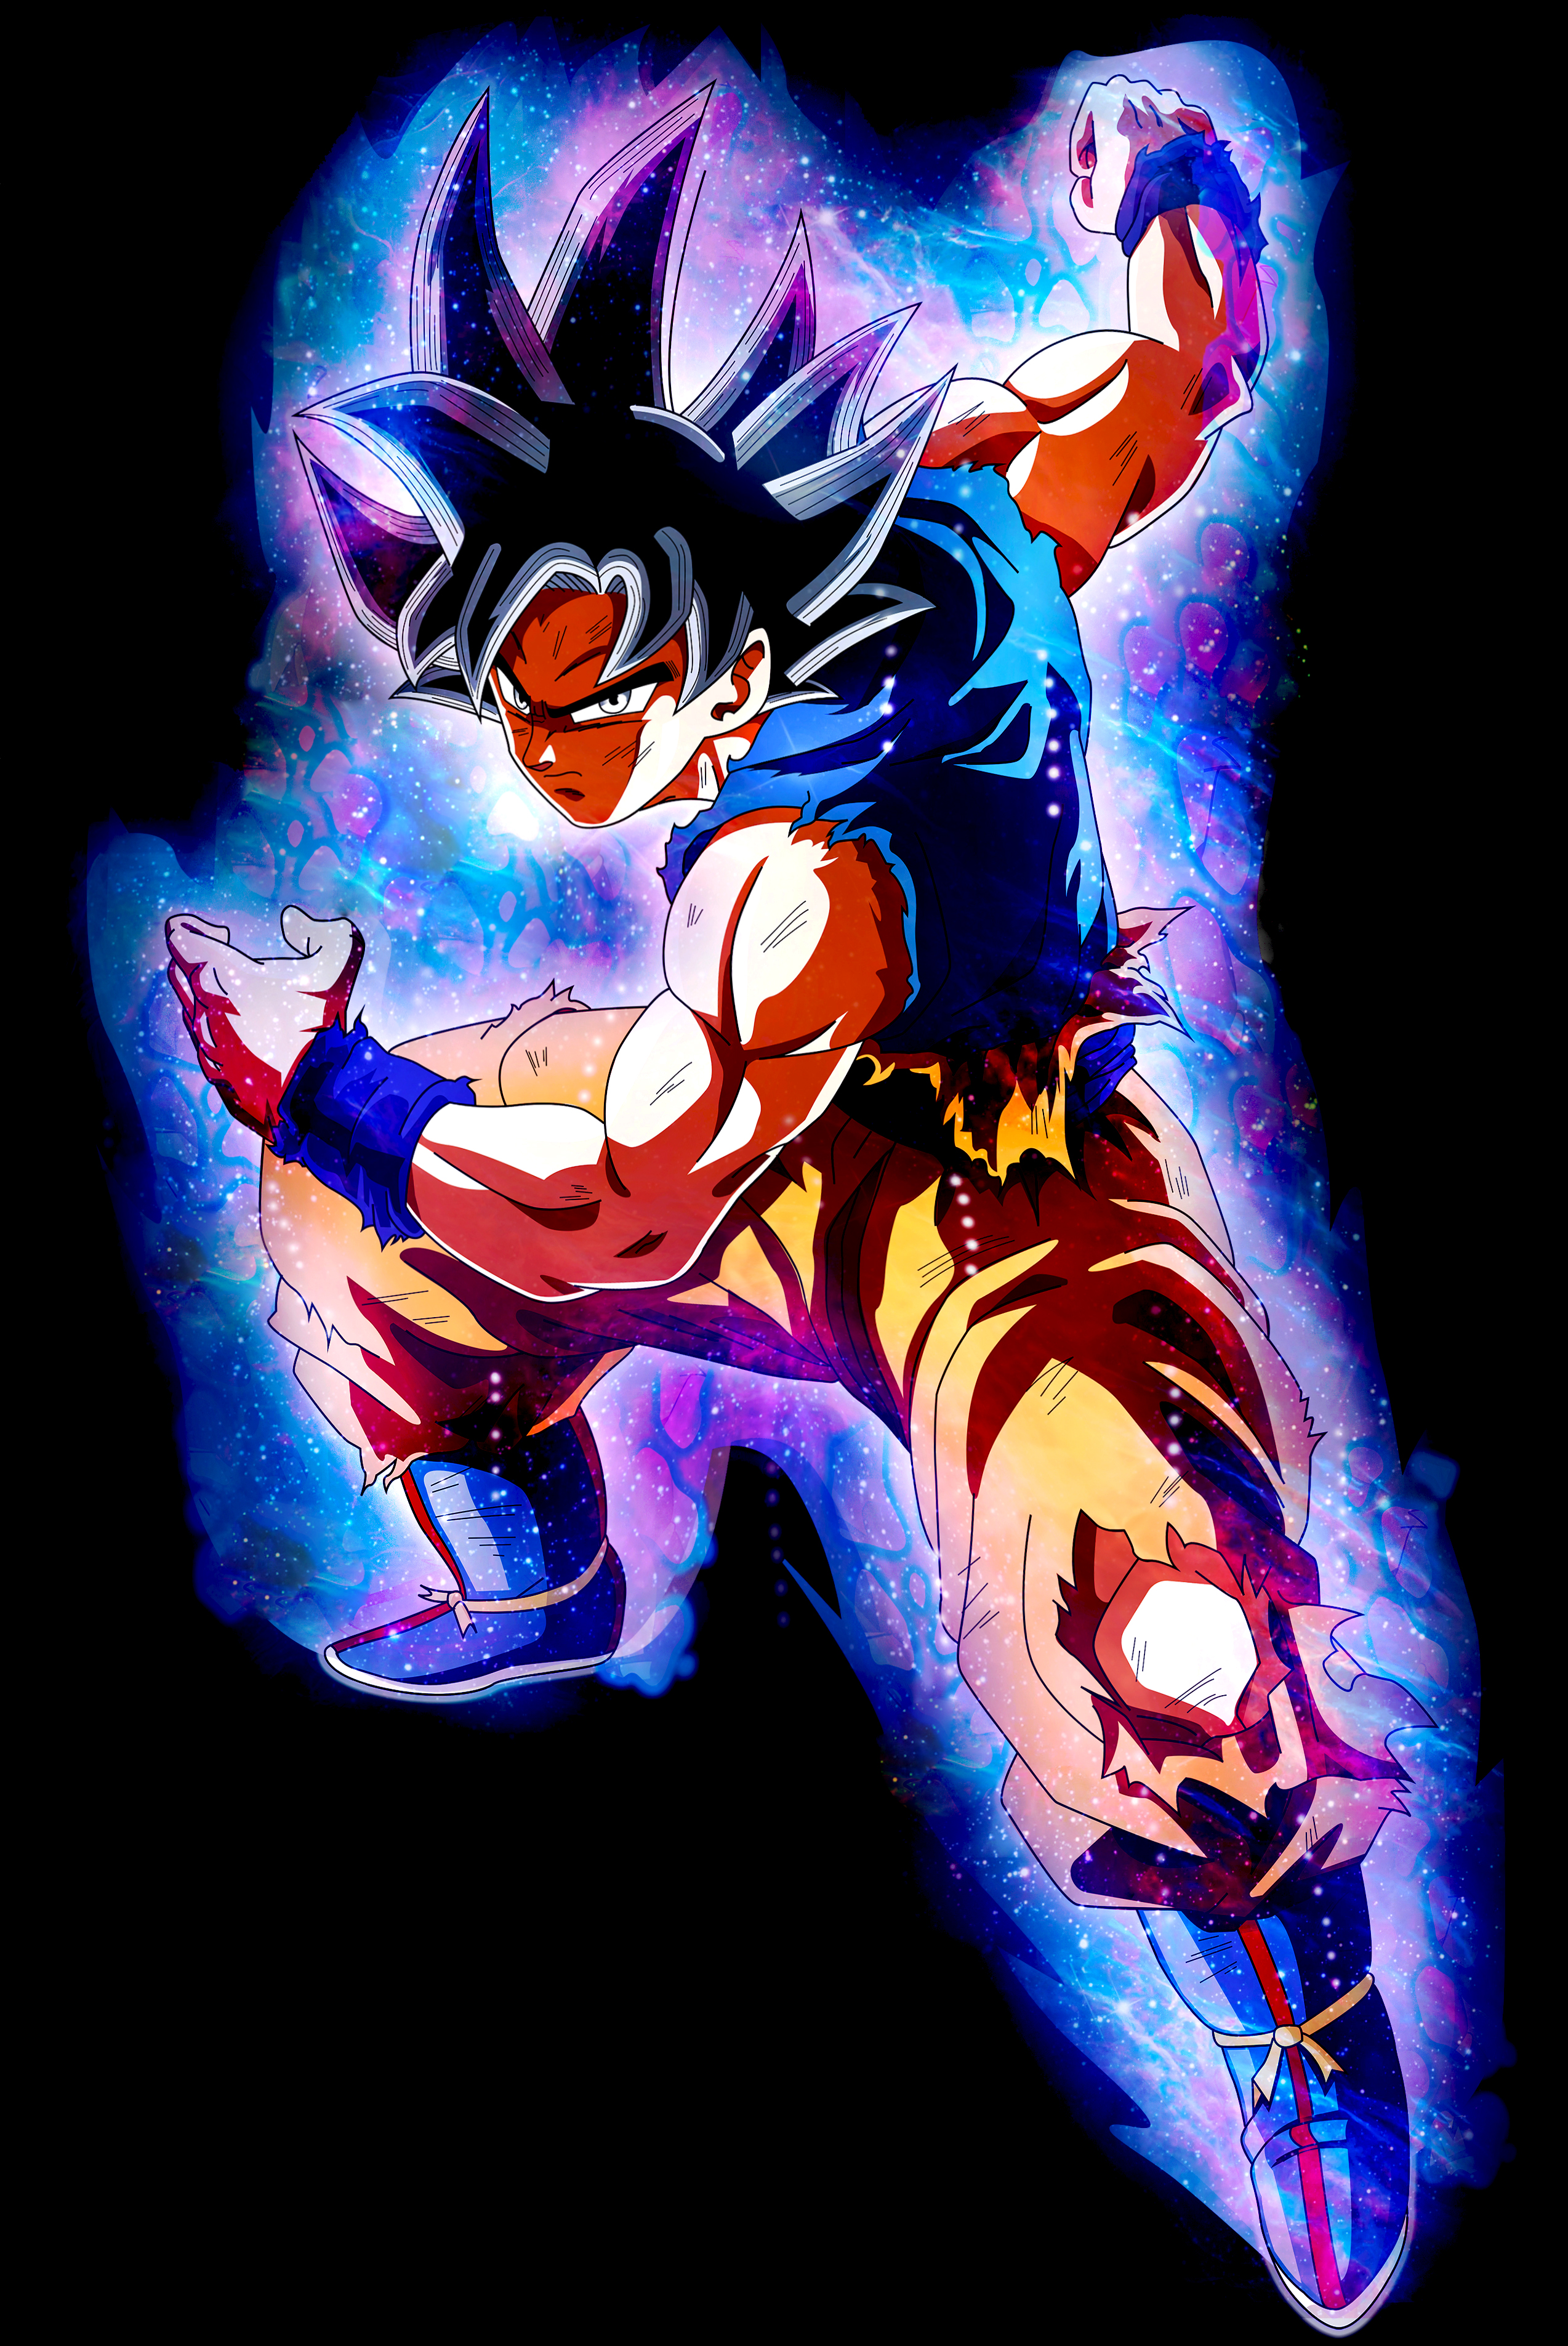 Goku Migatte No Gokui Wallpapers posted by Zoey Johnson